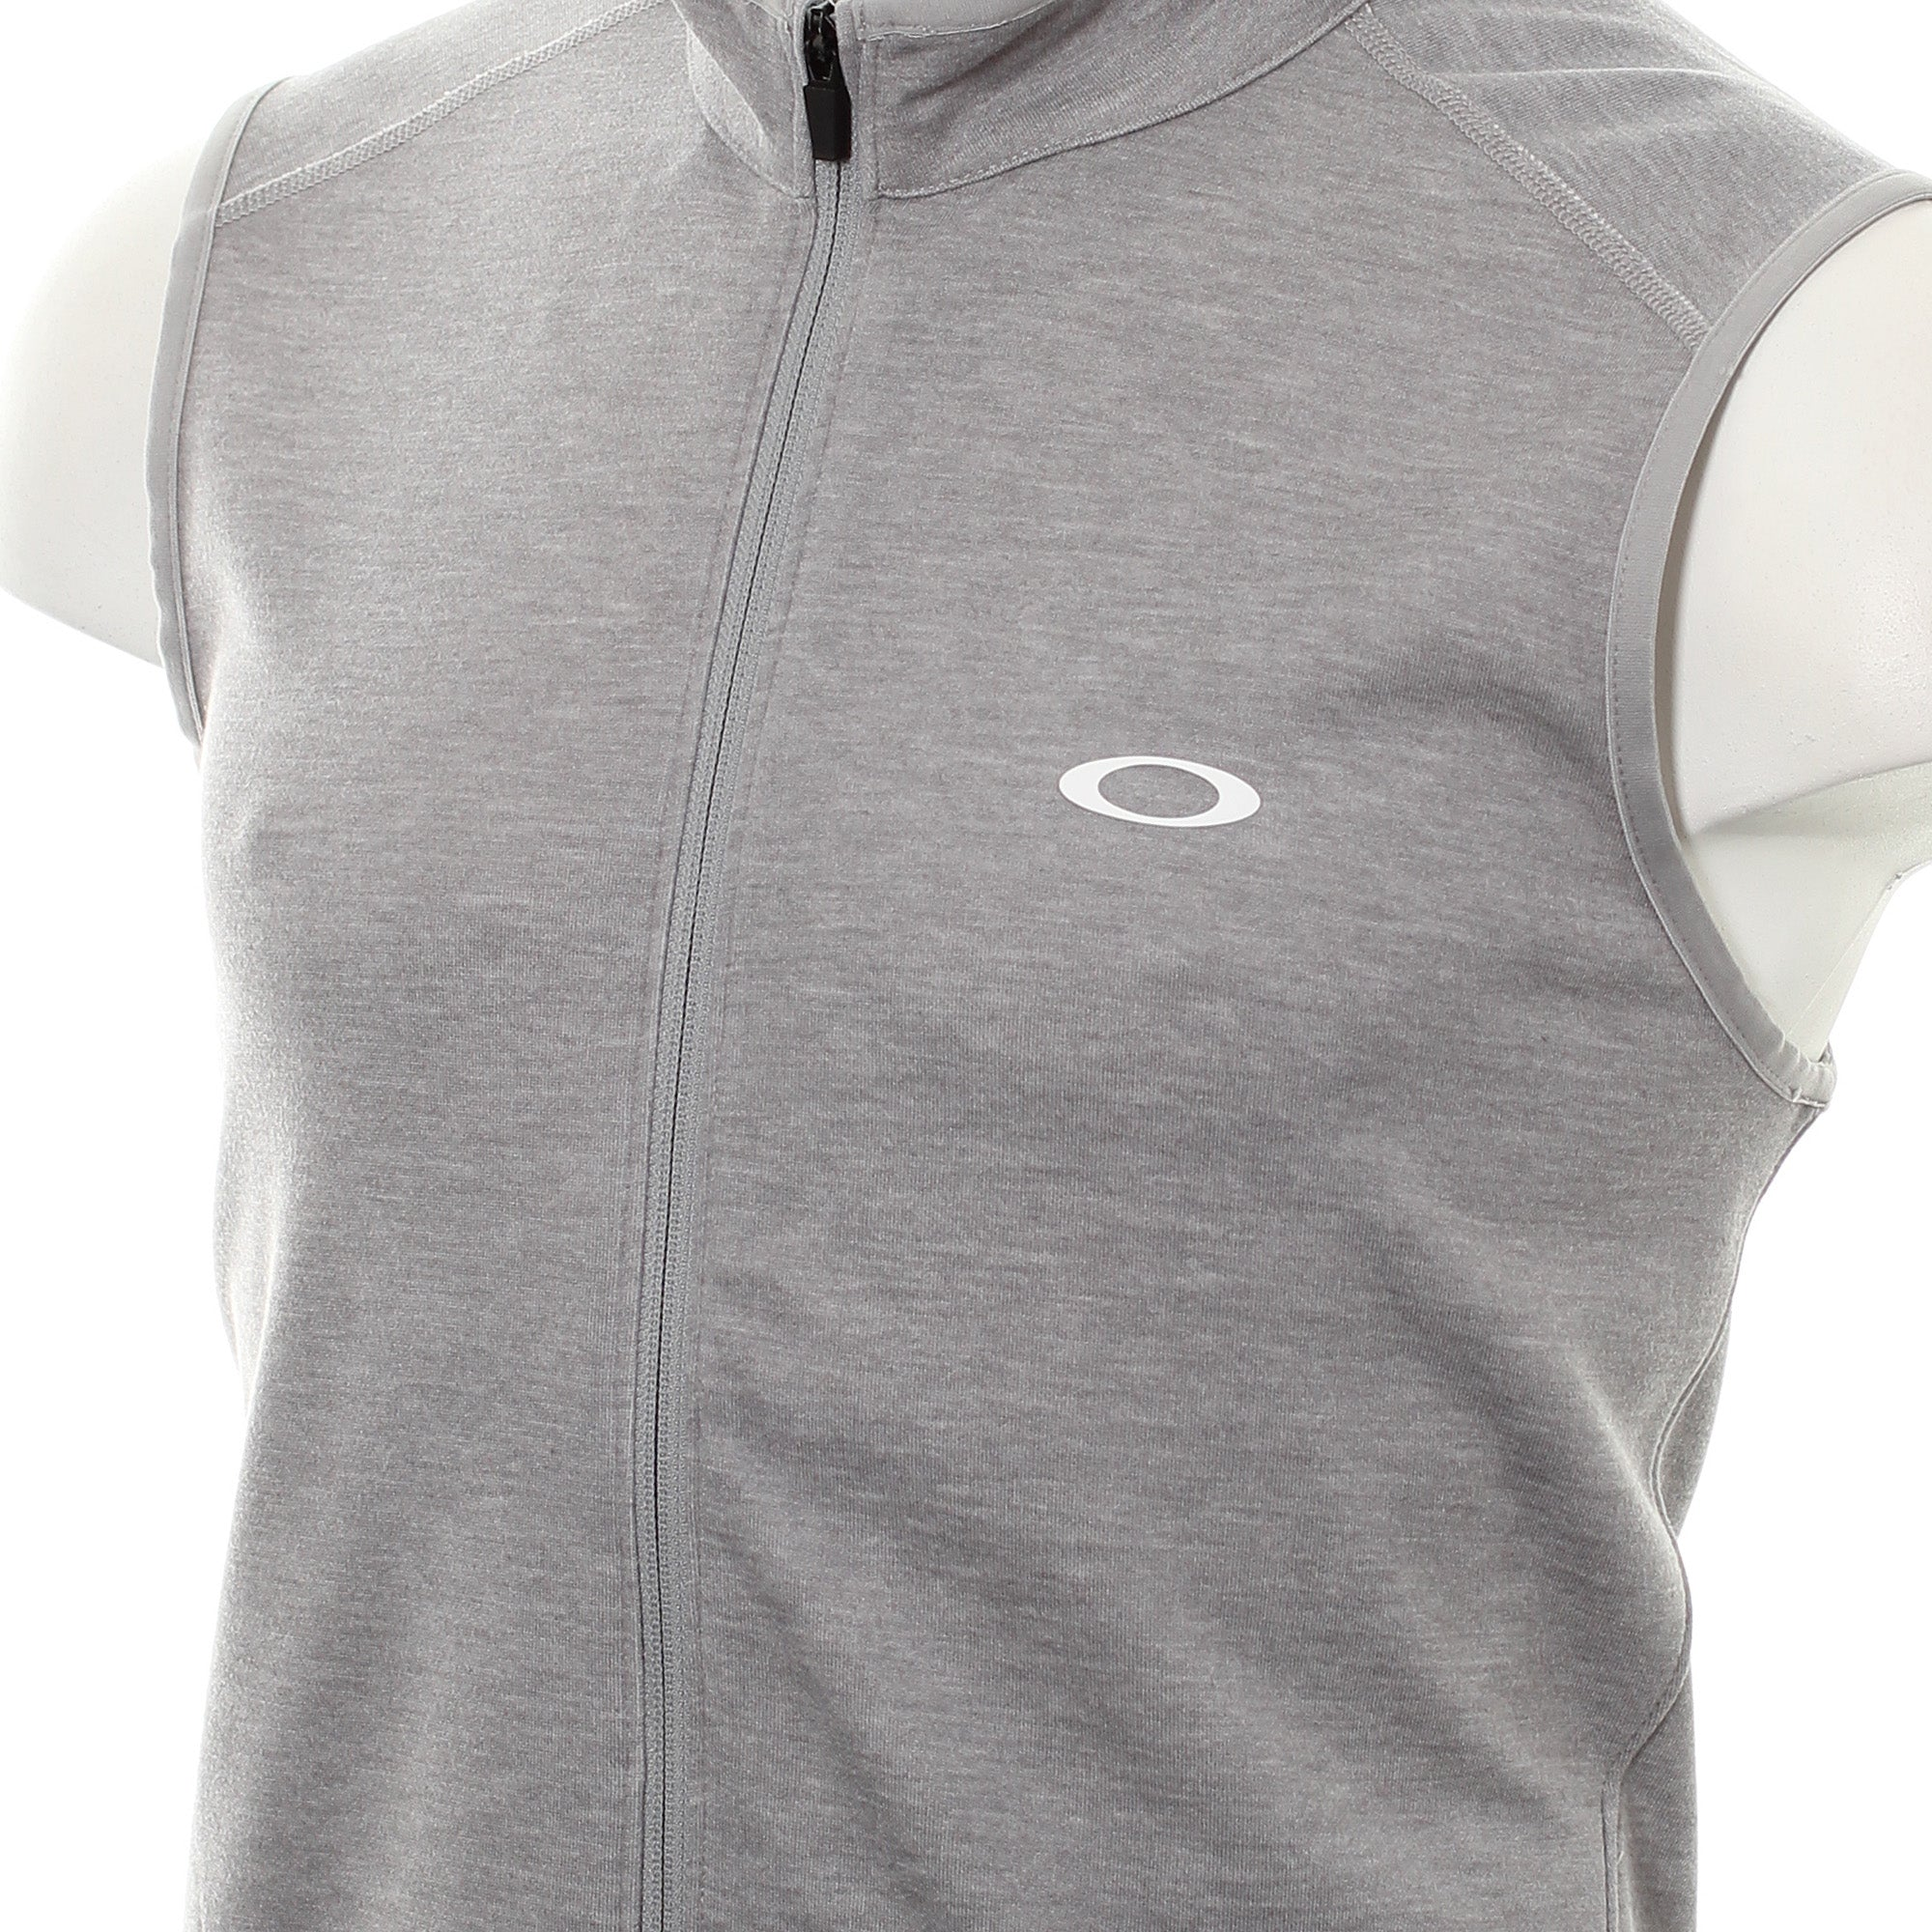 Oakley Golf Range Zip Vest 2.0